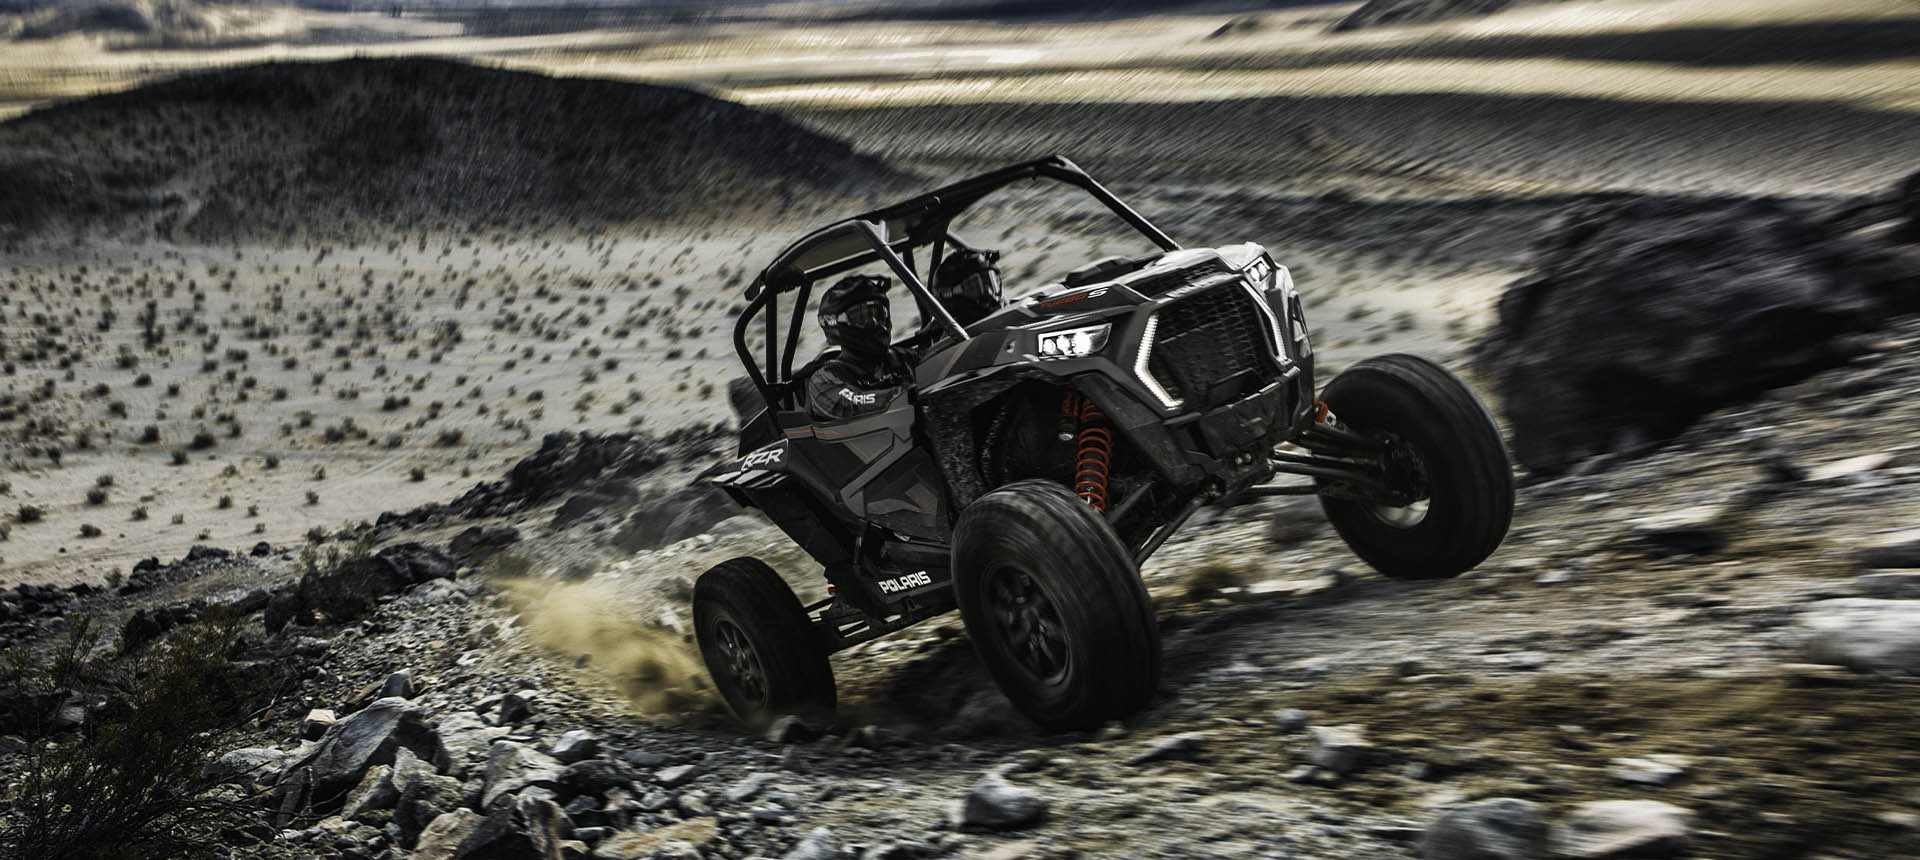 rzr-xp-turbo-s-titanium-metallic-media-3-lg